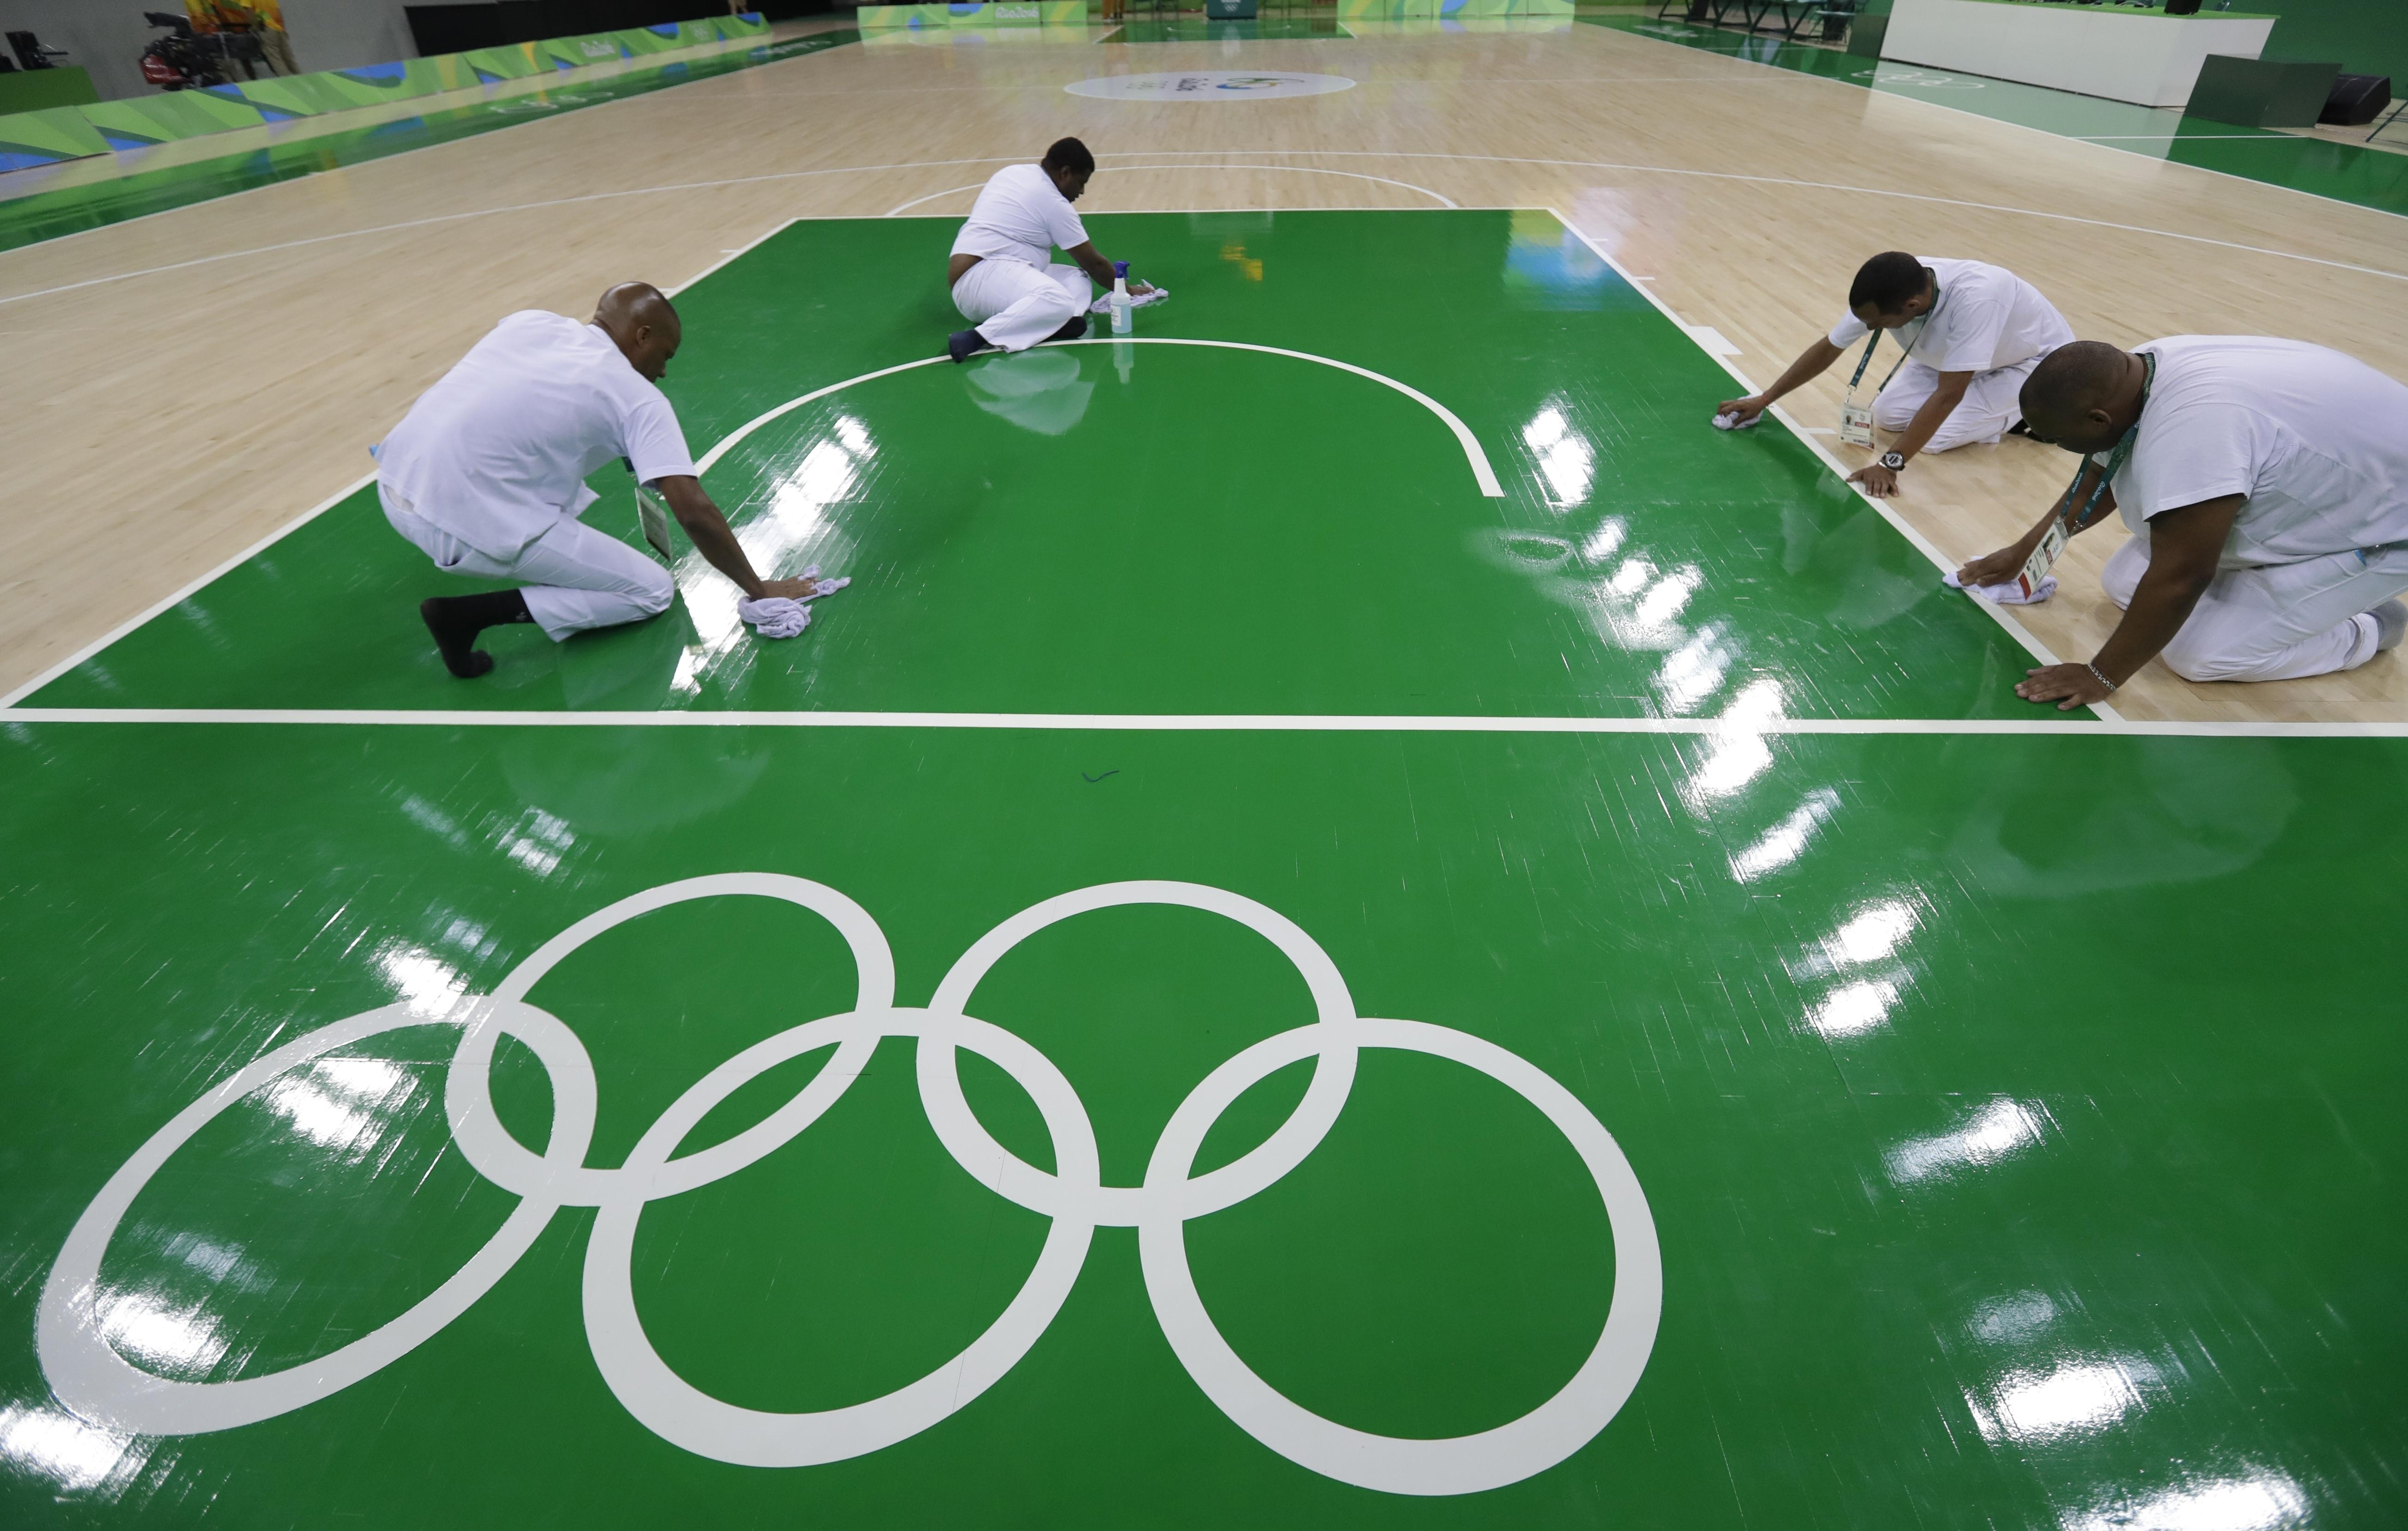 Rio_olympics_basketball_women